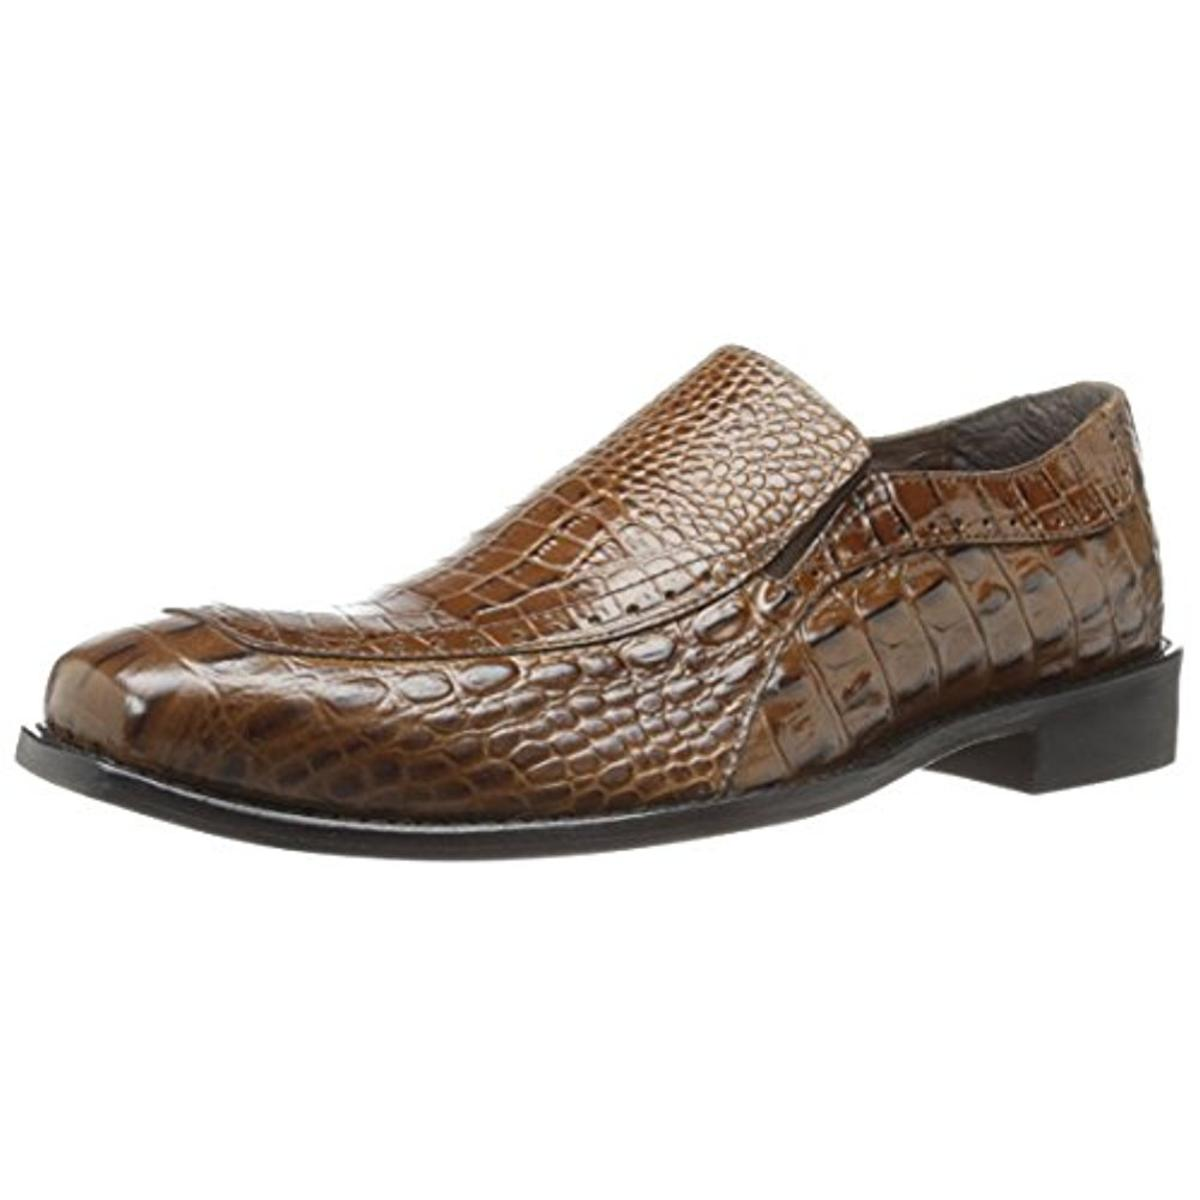 Stacy Adams 0133 Mens Parisi Brown Leather Formal Loafers Shoes 9 Wide (E) BHFO